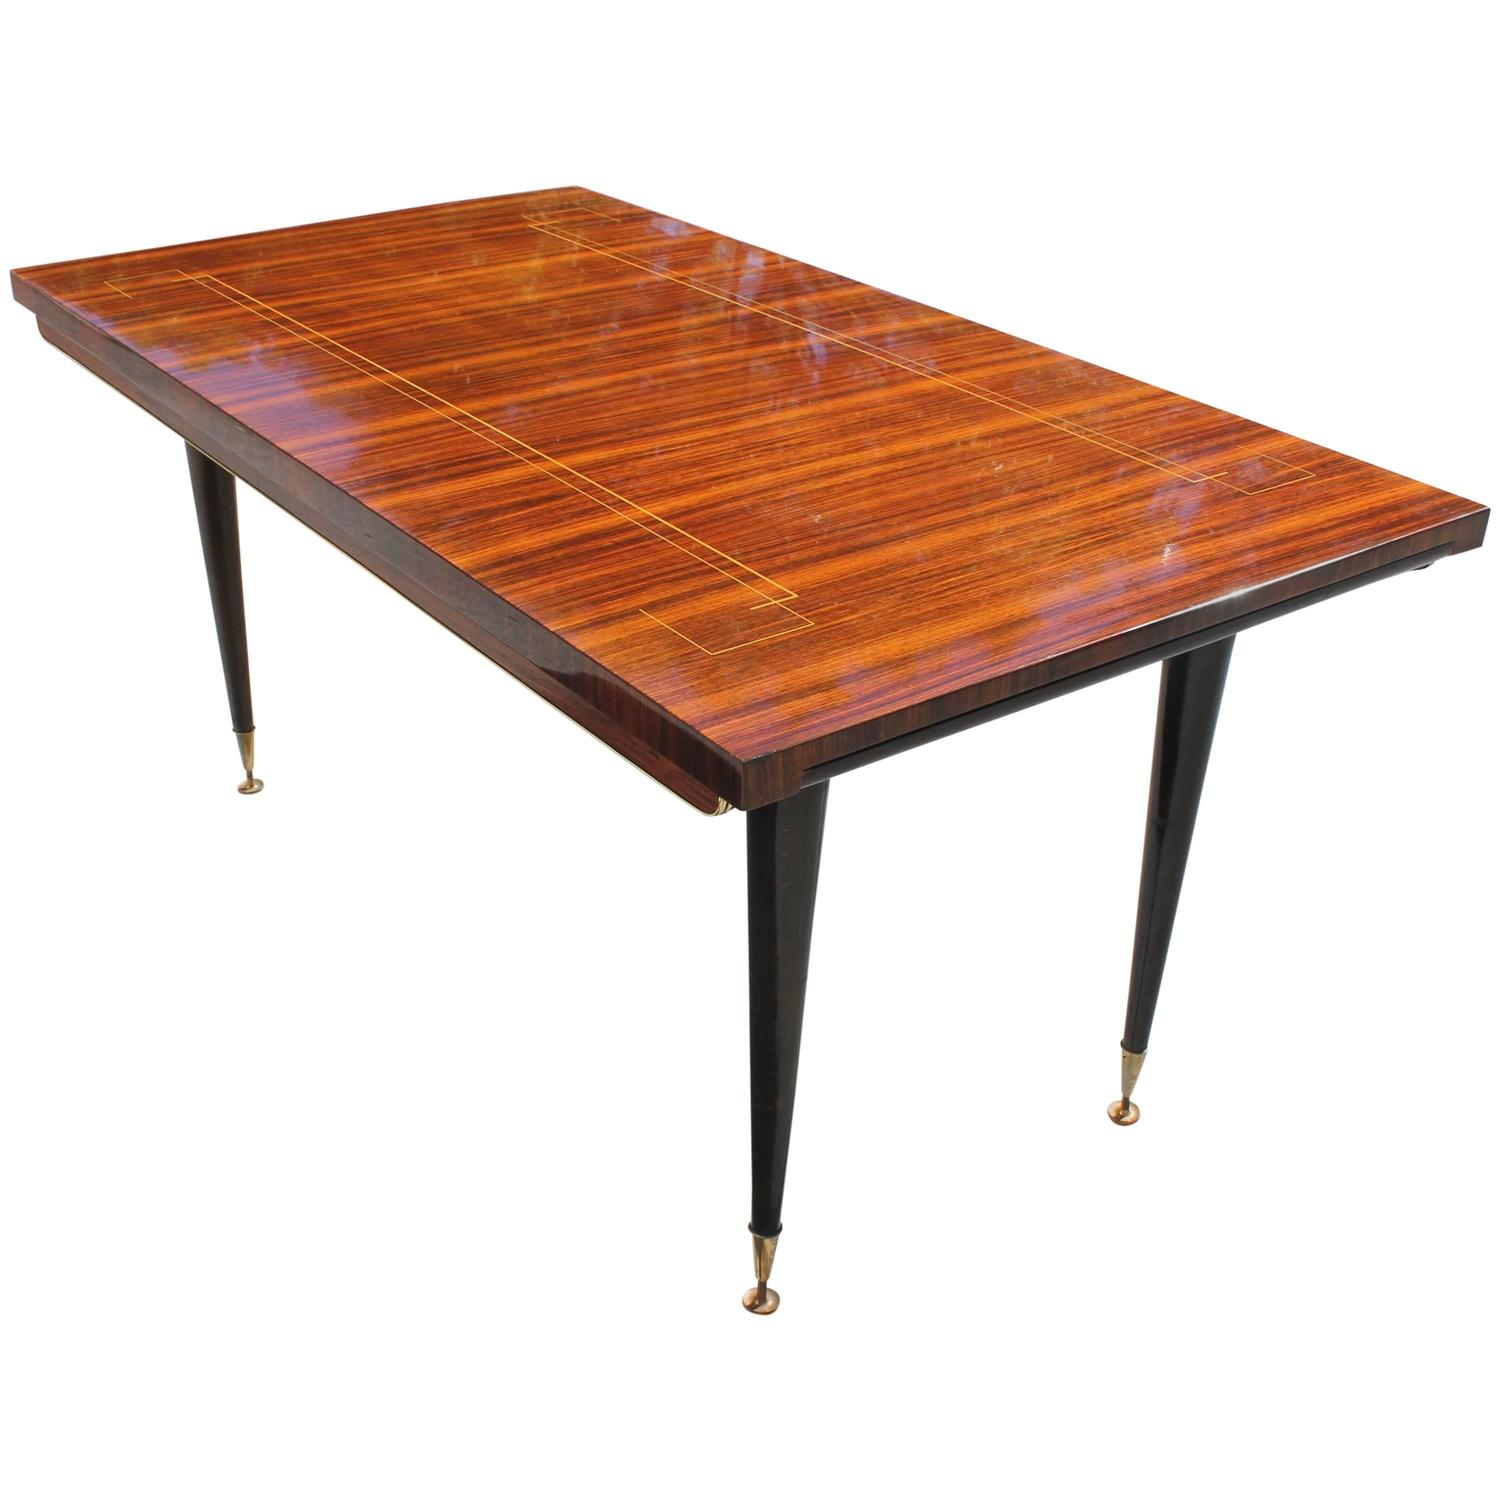 French art deco art moderne macassar ebony dining table for Table de nuit art deco